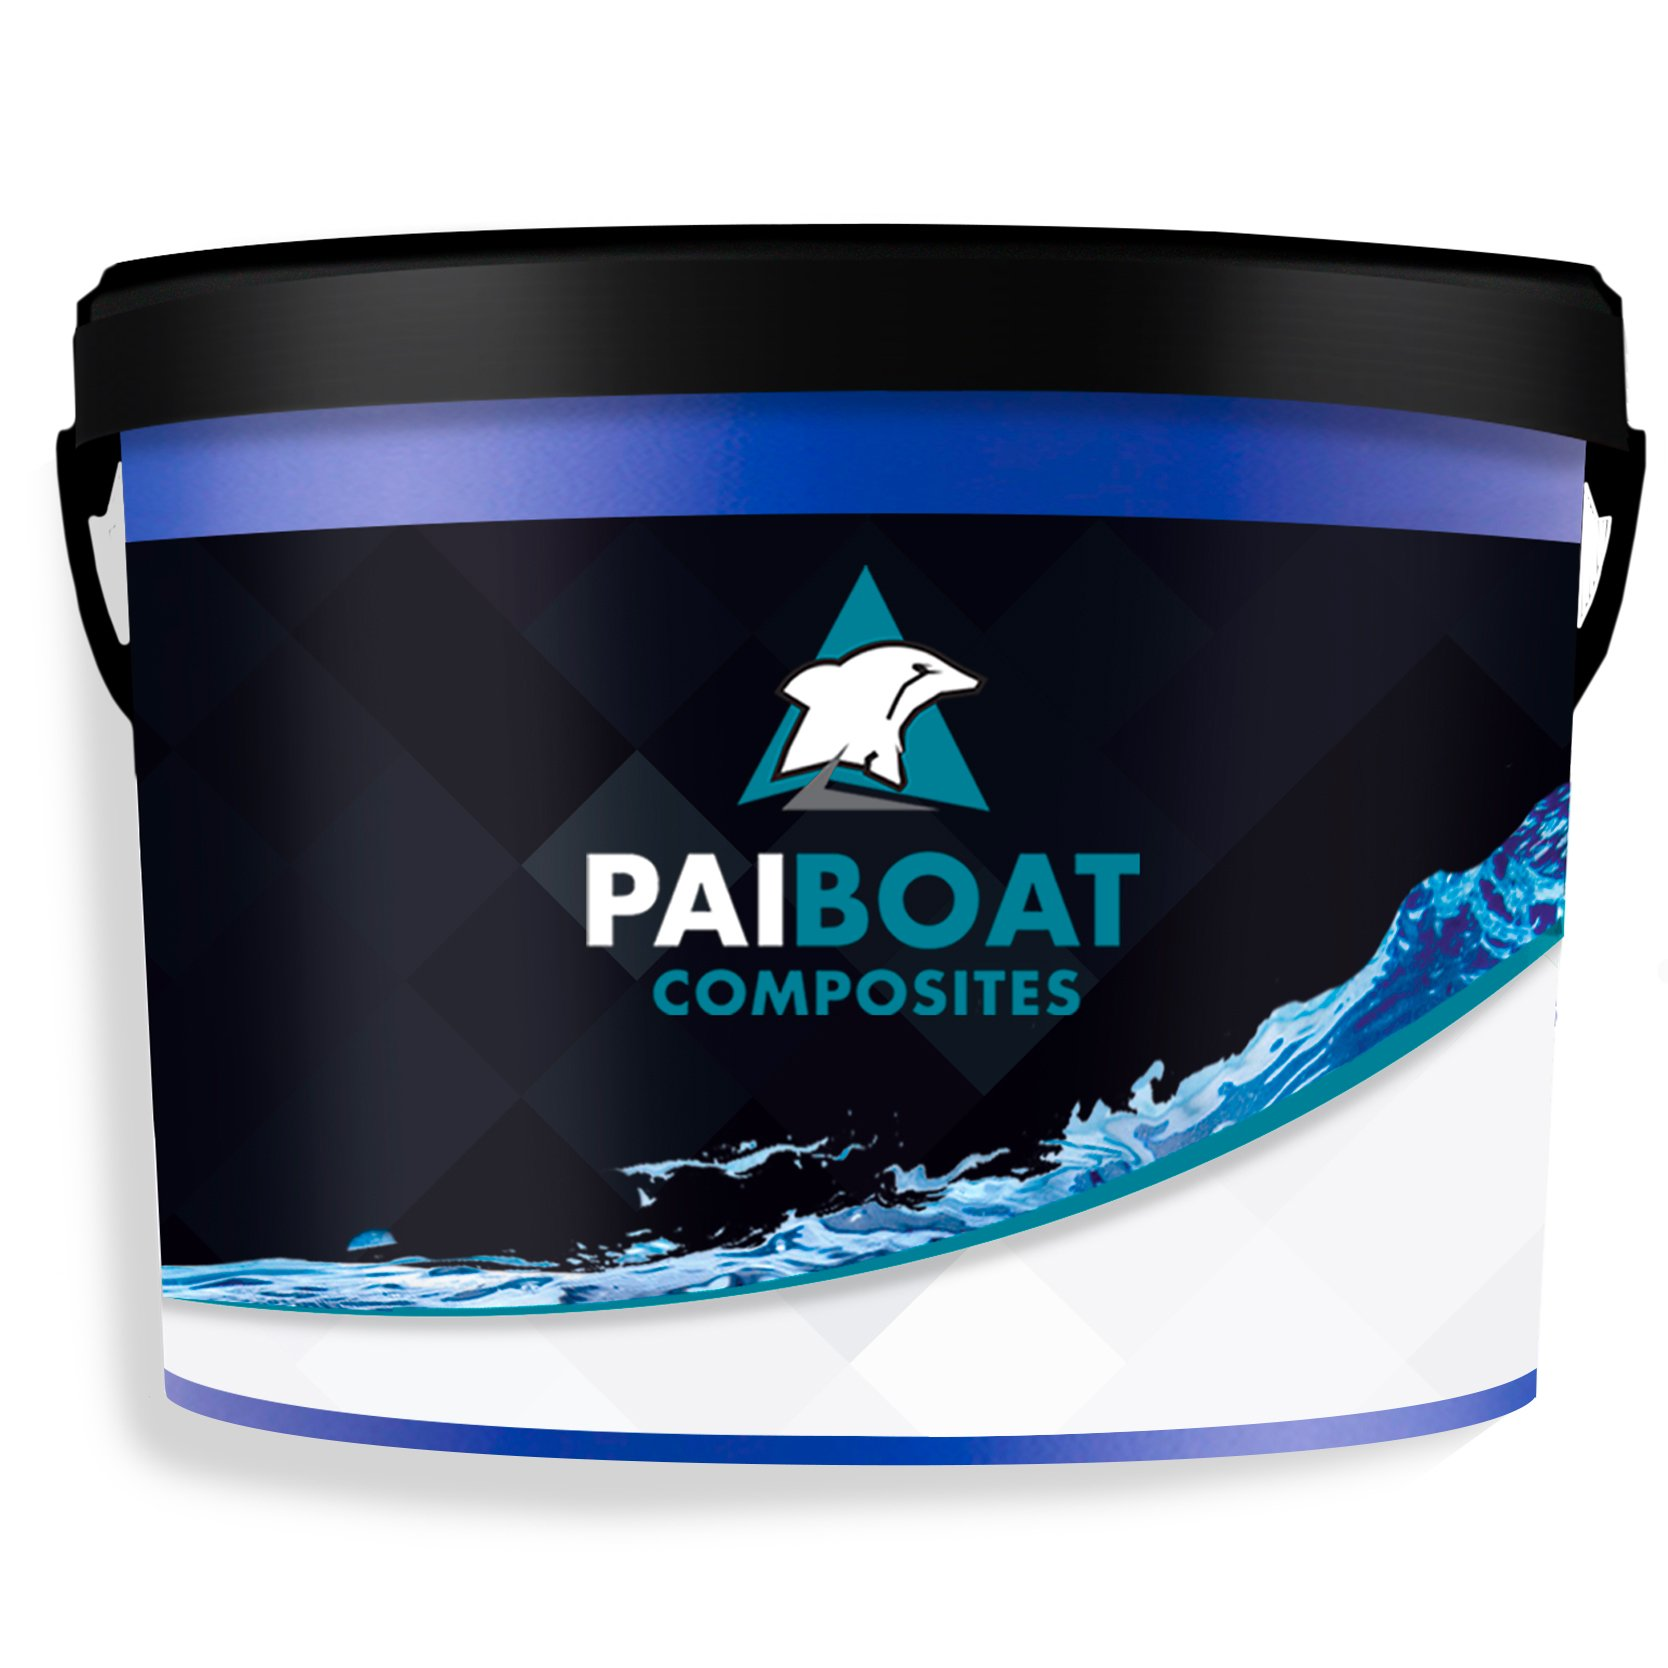 NW 1 PLUS polishing compound for composites materials PAI BOAT COMPOSITES